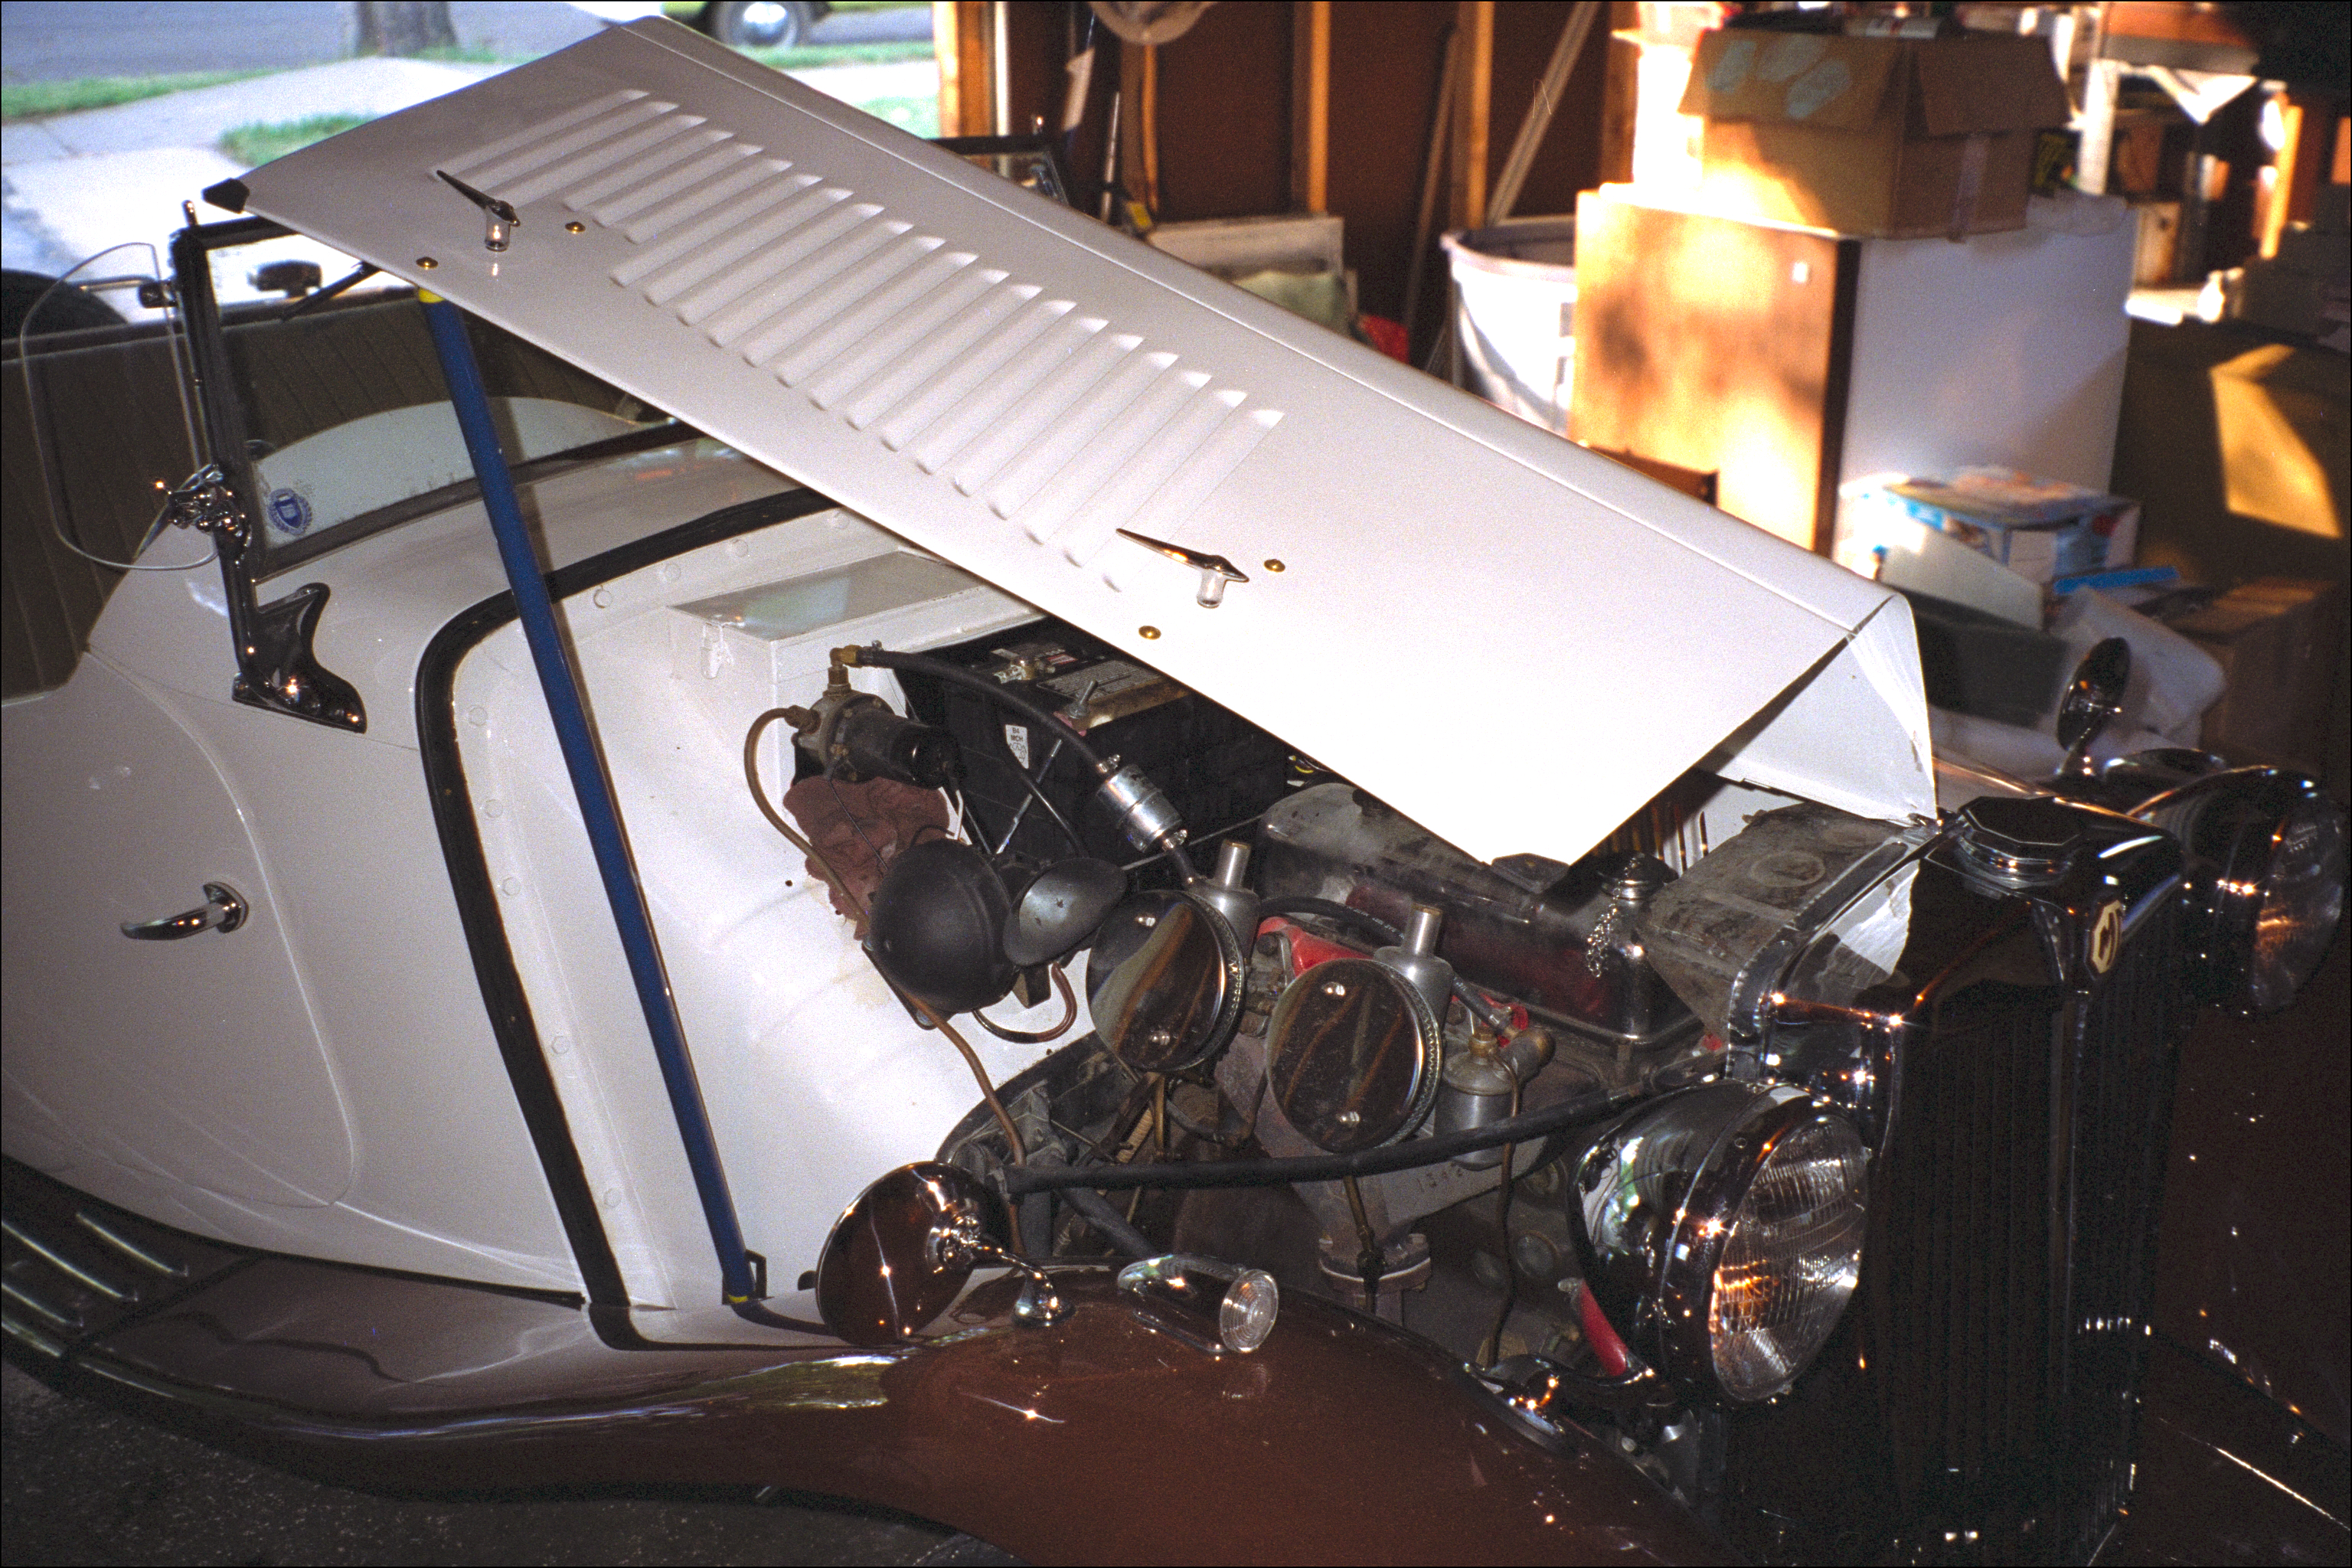 Engine from right, bonnet open